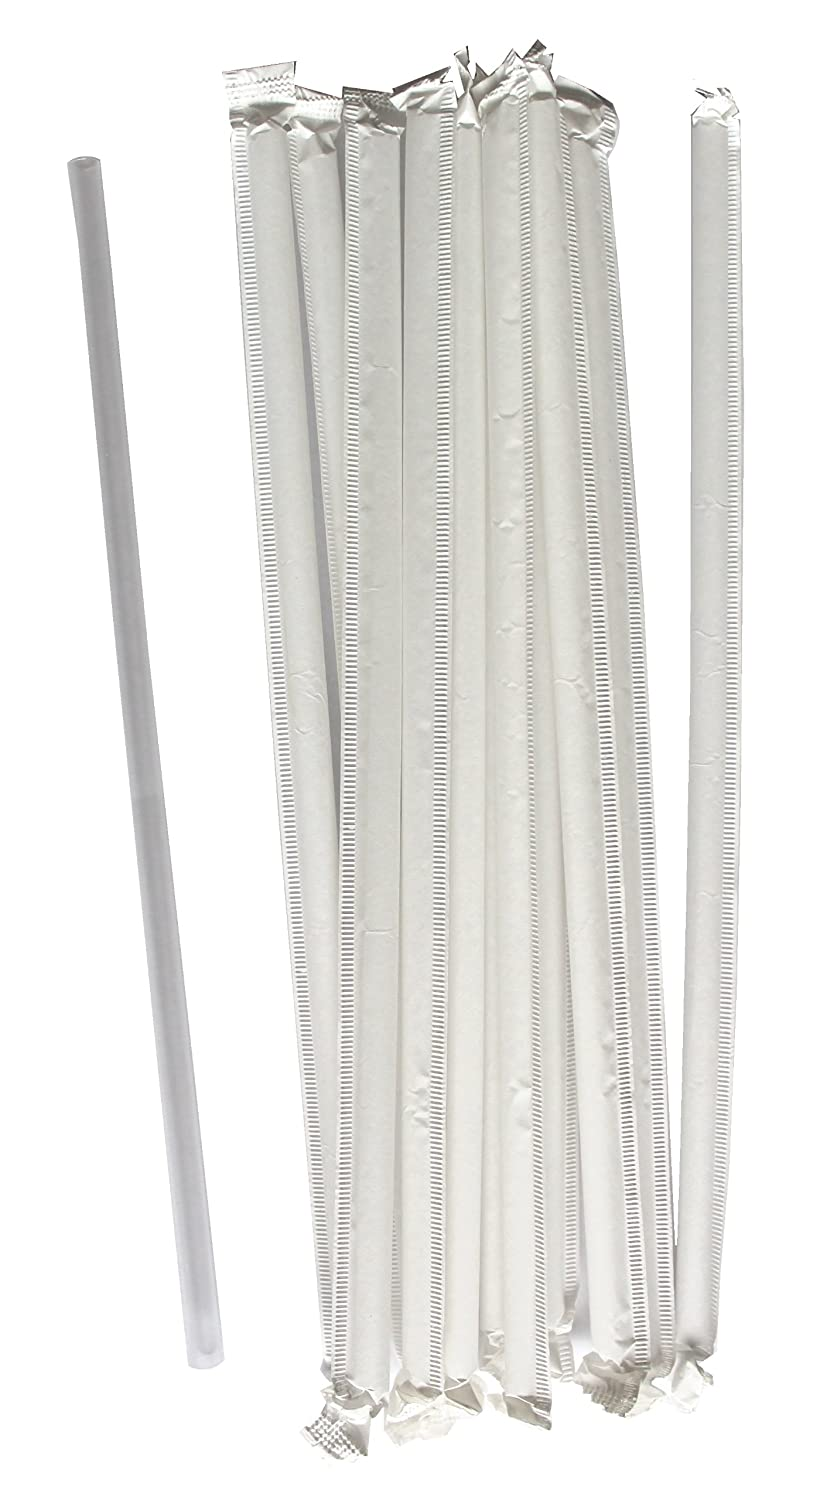 Daxwell 8.25 x 5.6mm Straw, Paper Wrapped, Clear (Box of 500) C10003285B